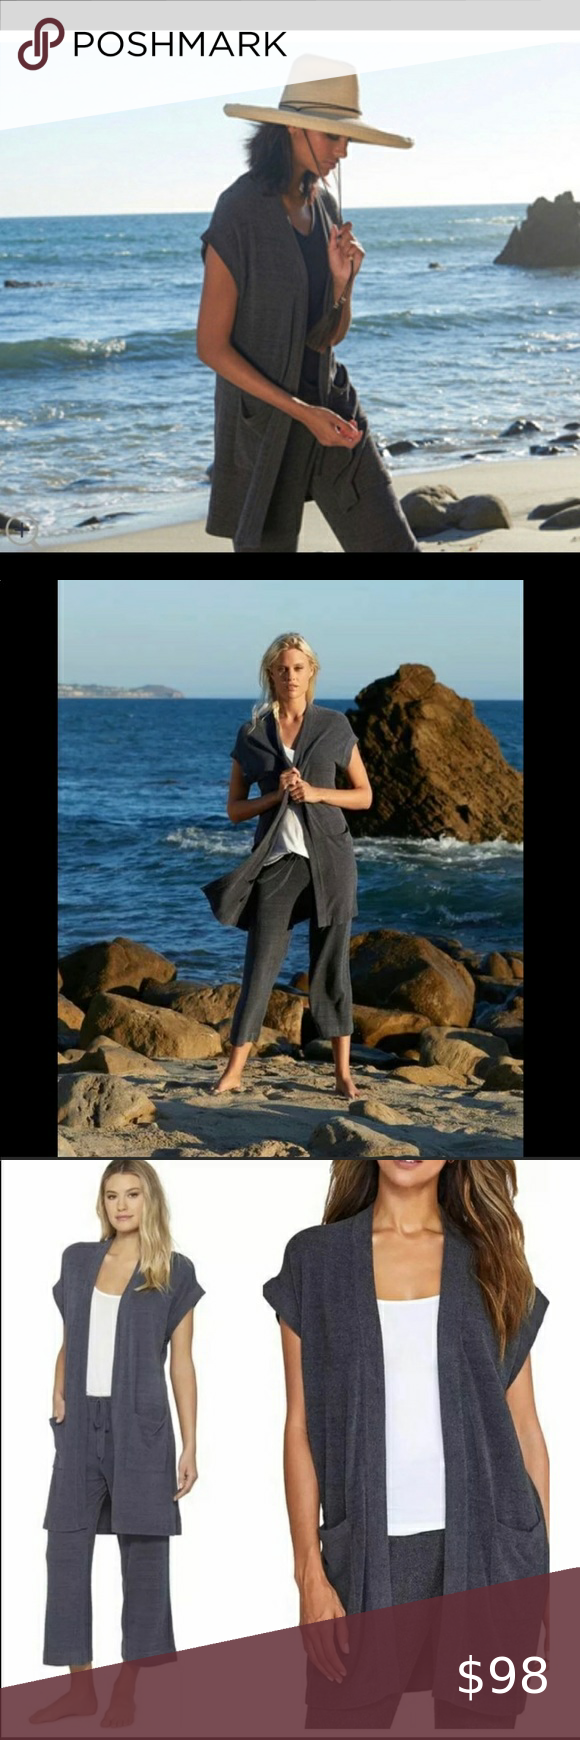 Barefoot Dreams ultra lite grey Brand New With Tag Barefoot Dreams ultra lite grey sleeveless cardigan/Brand New With Tags .. the cozy chic ultra lite knit fabric is so luxurious soft , you'll NEVER want to take it off , but don't worry no one is saying you have to , your closet is screaming for this amazing piece Barefoot Dreams Sweaters Cardigans